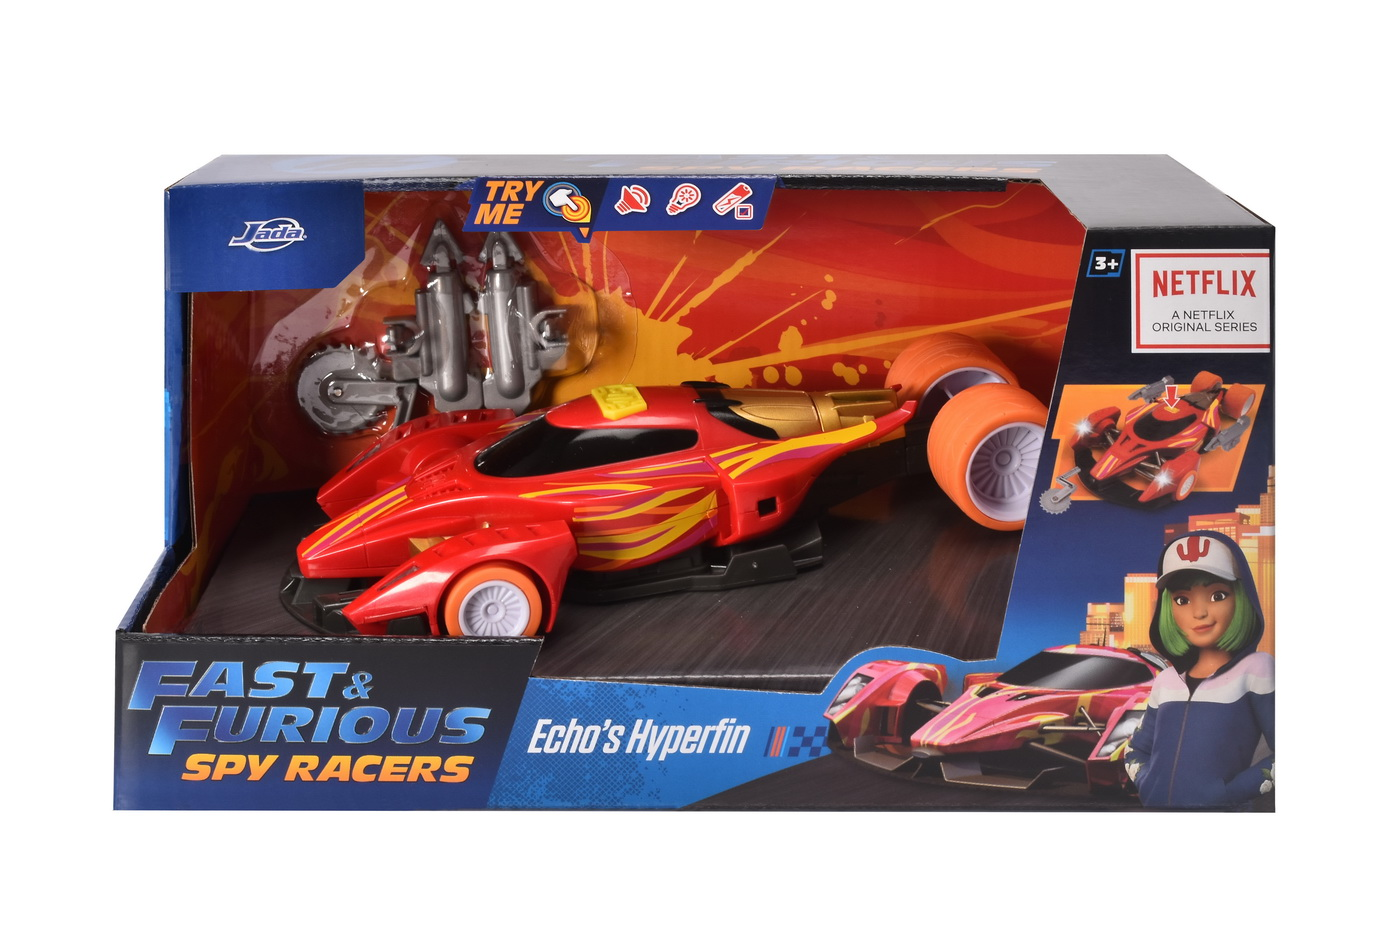 Fast and furious spy racers rally hyper fin scara 1:24